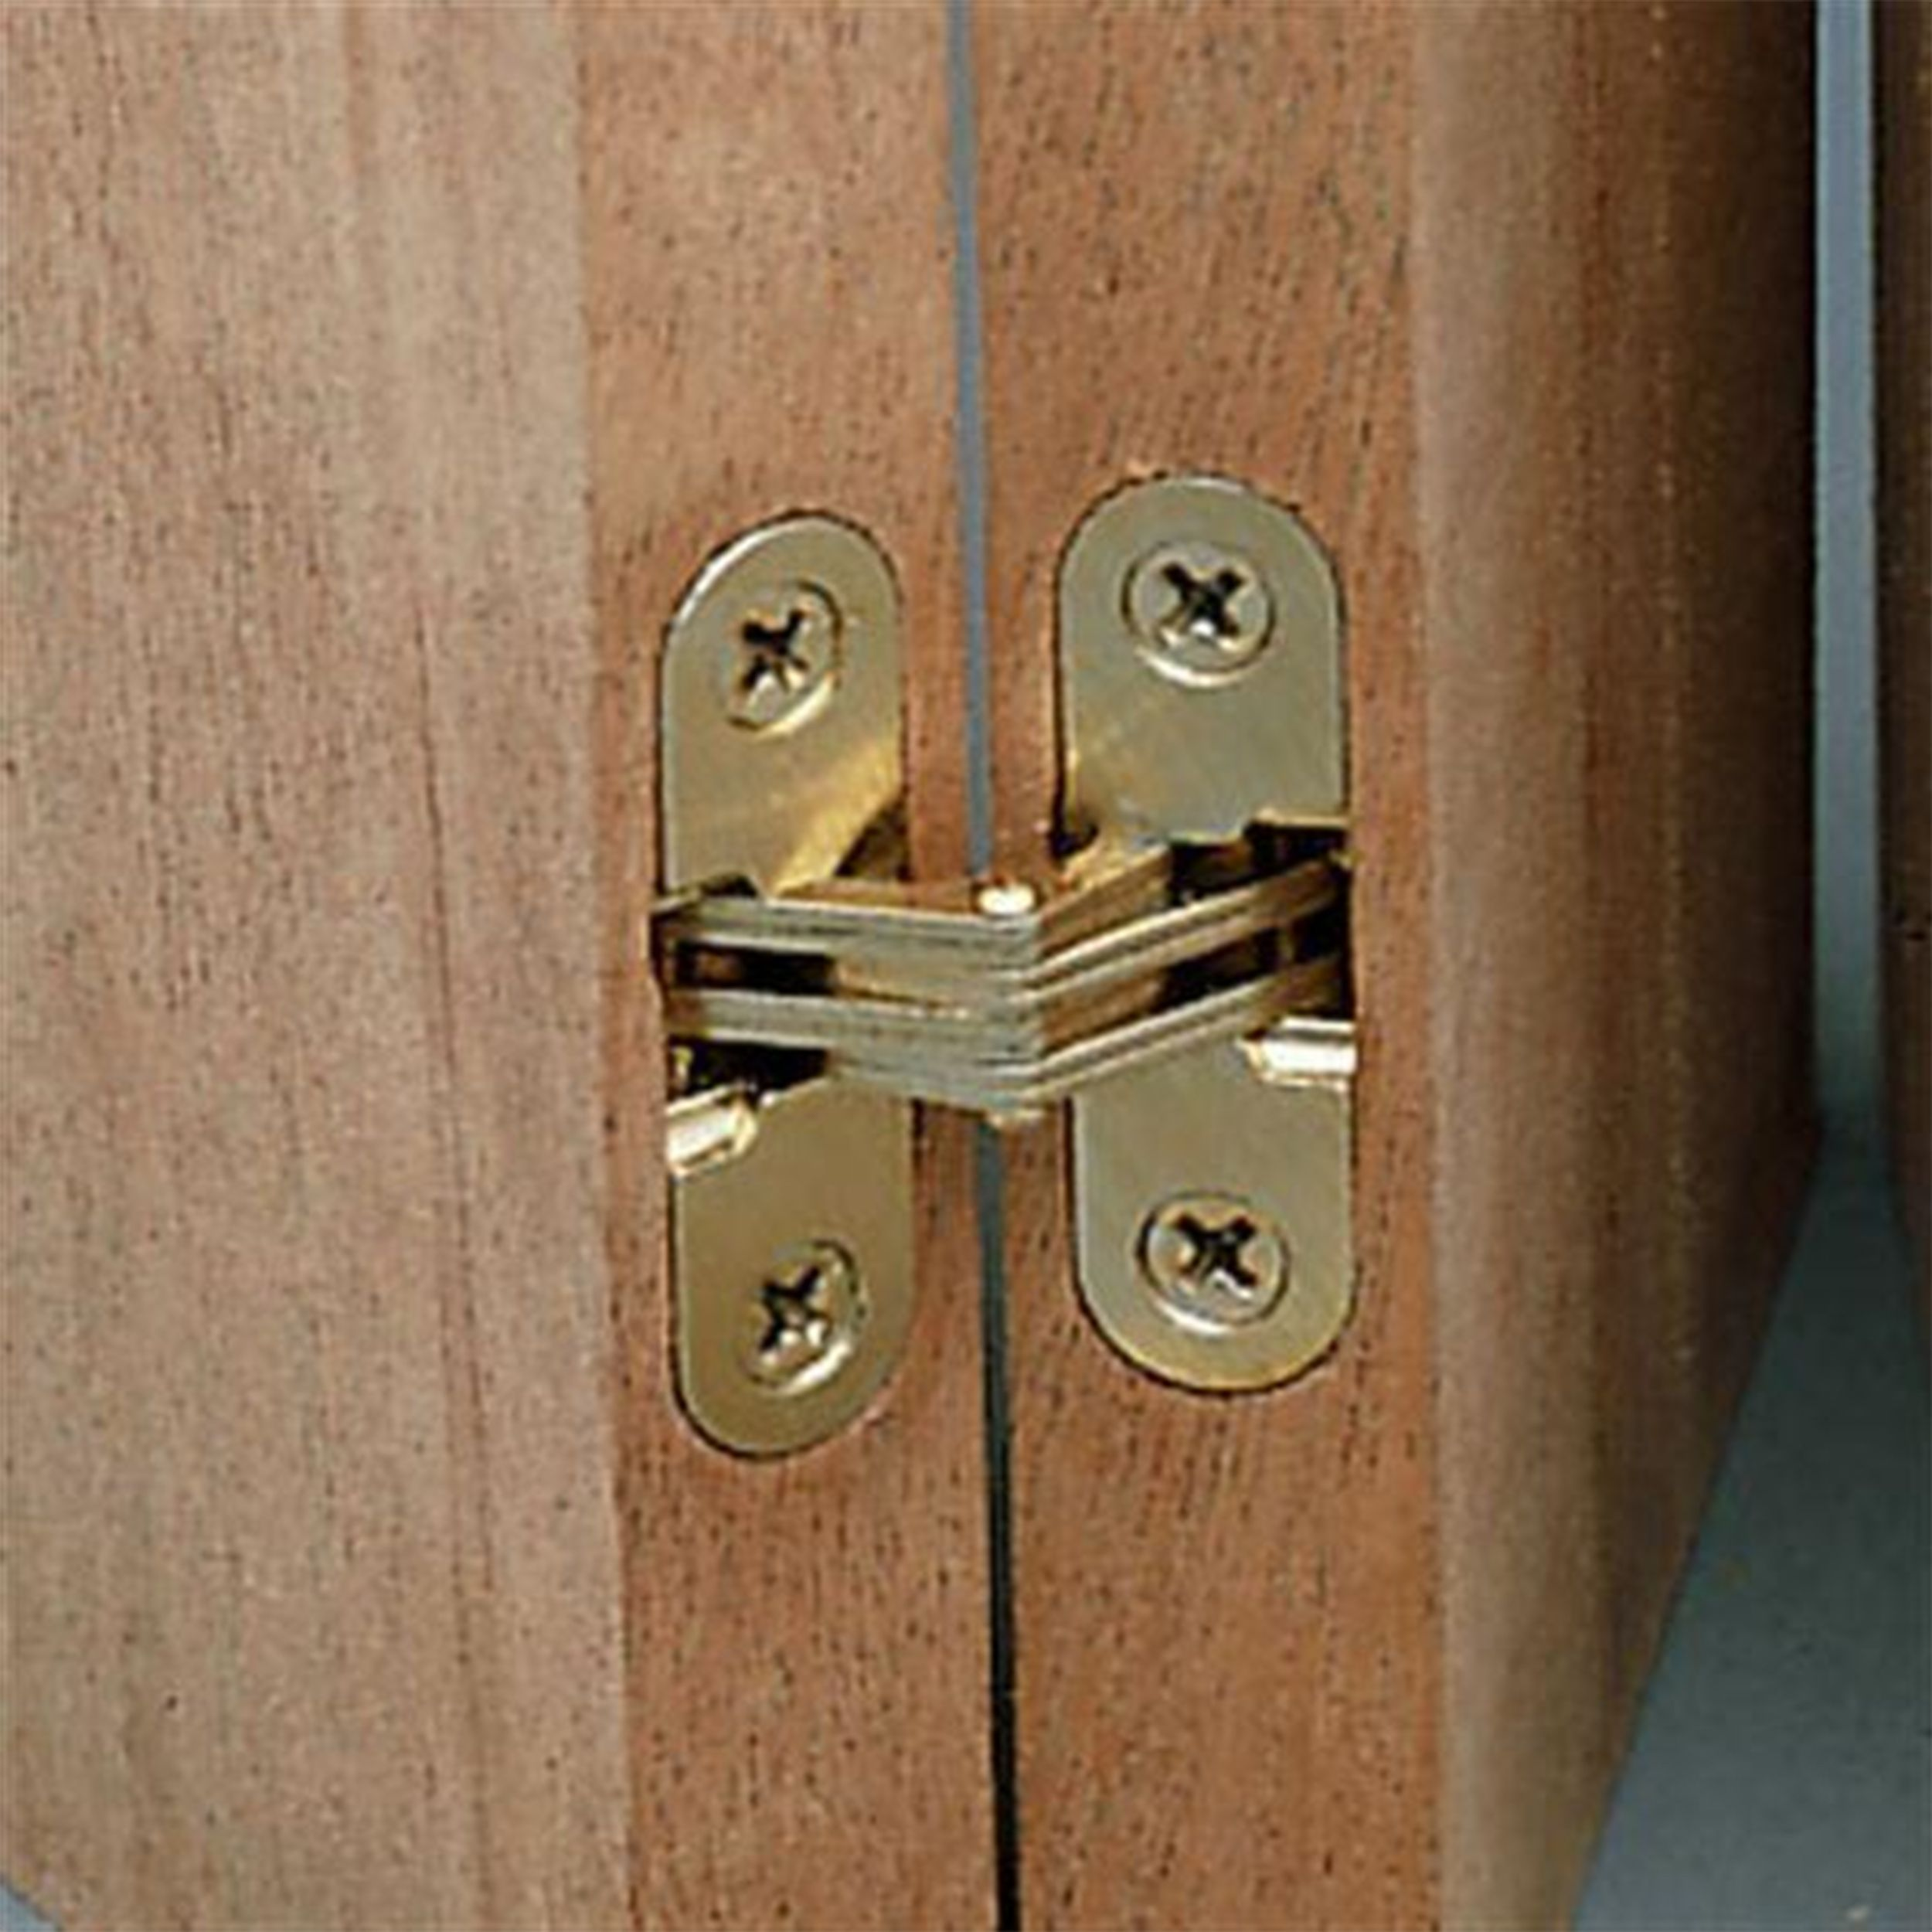 Soss Invisible Hinge 1 2 X 2 3 8 In 2020 Invisible Hinges Invisible Doors Wood Hinges